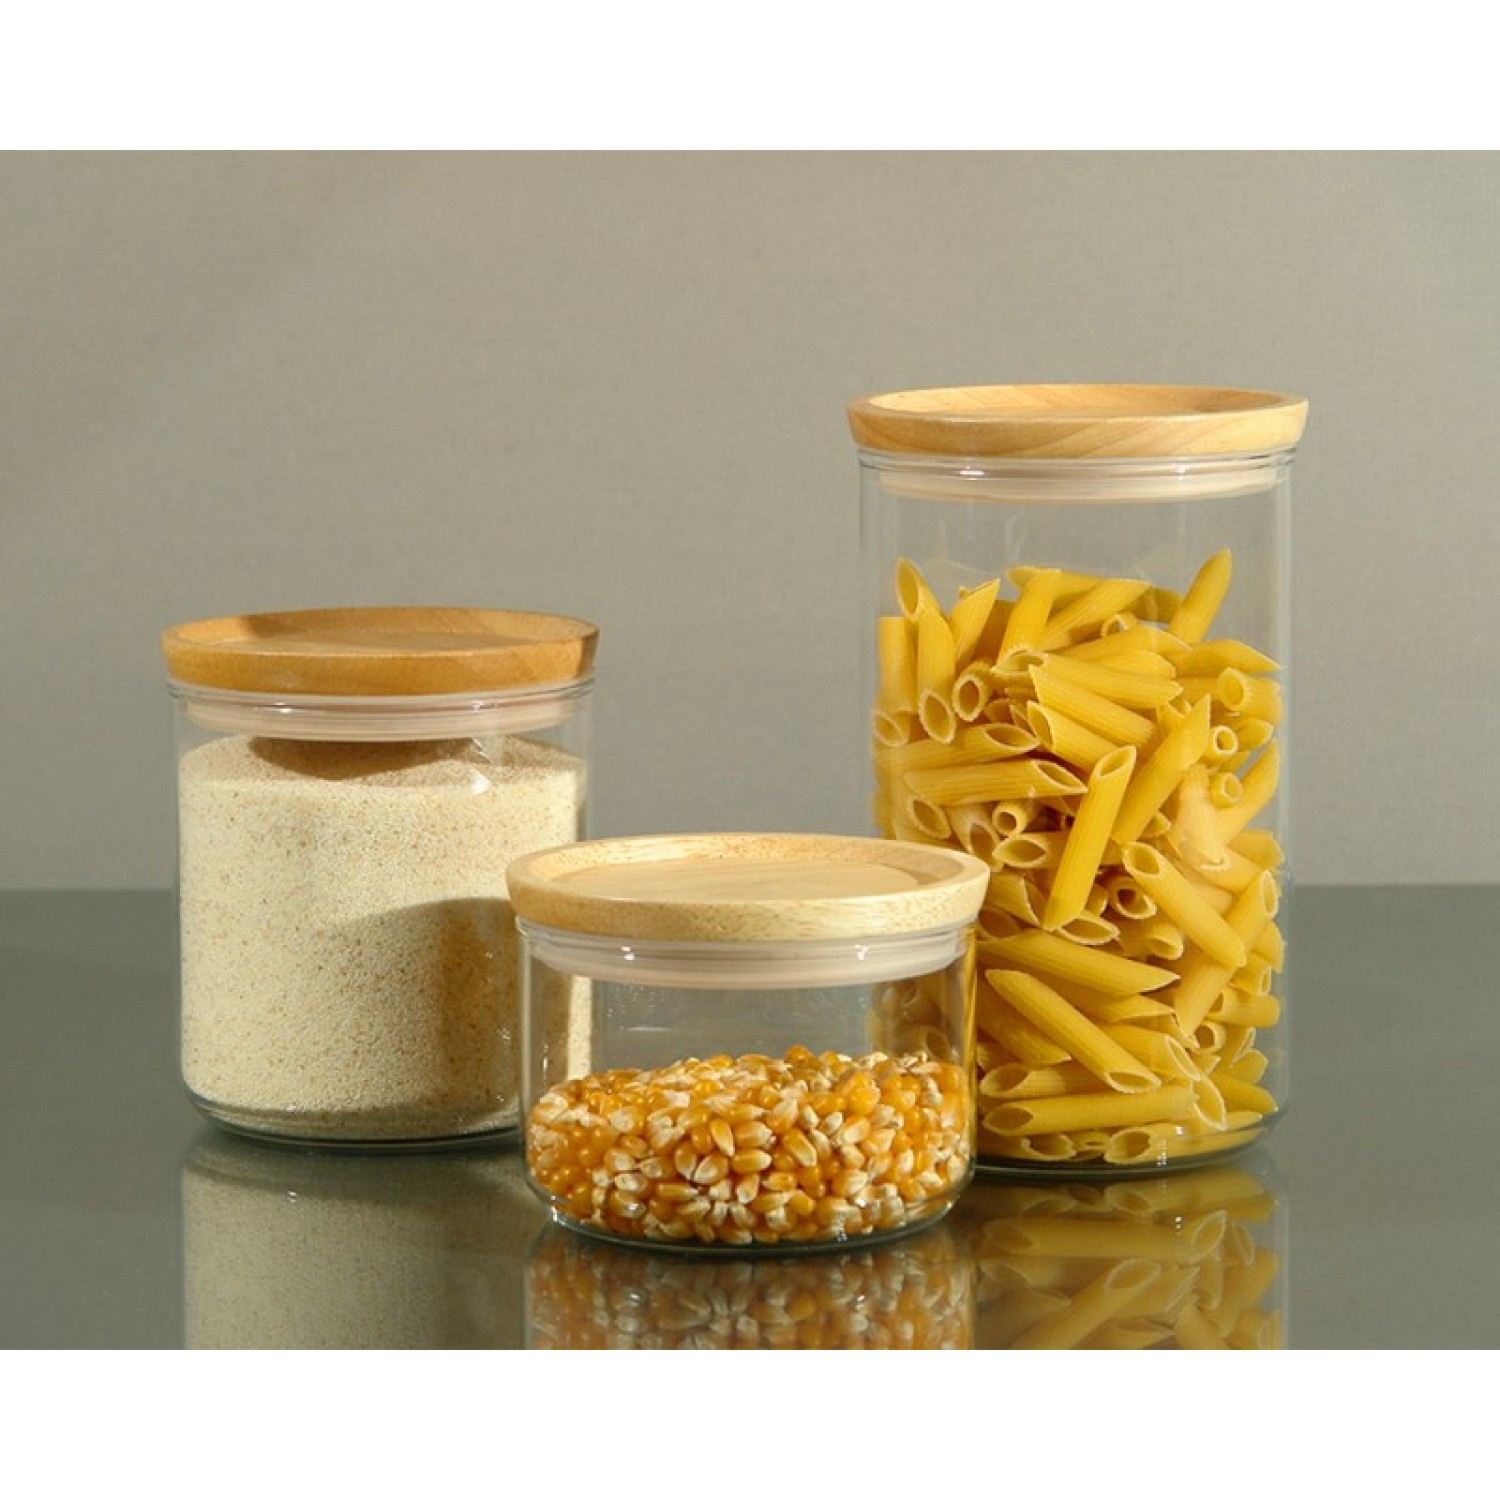 Glass Storage Box 0.4 l, 0.8 l or 1.2 l with Wooden Lids